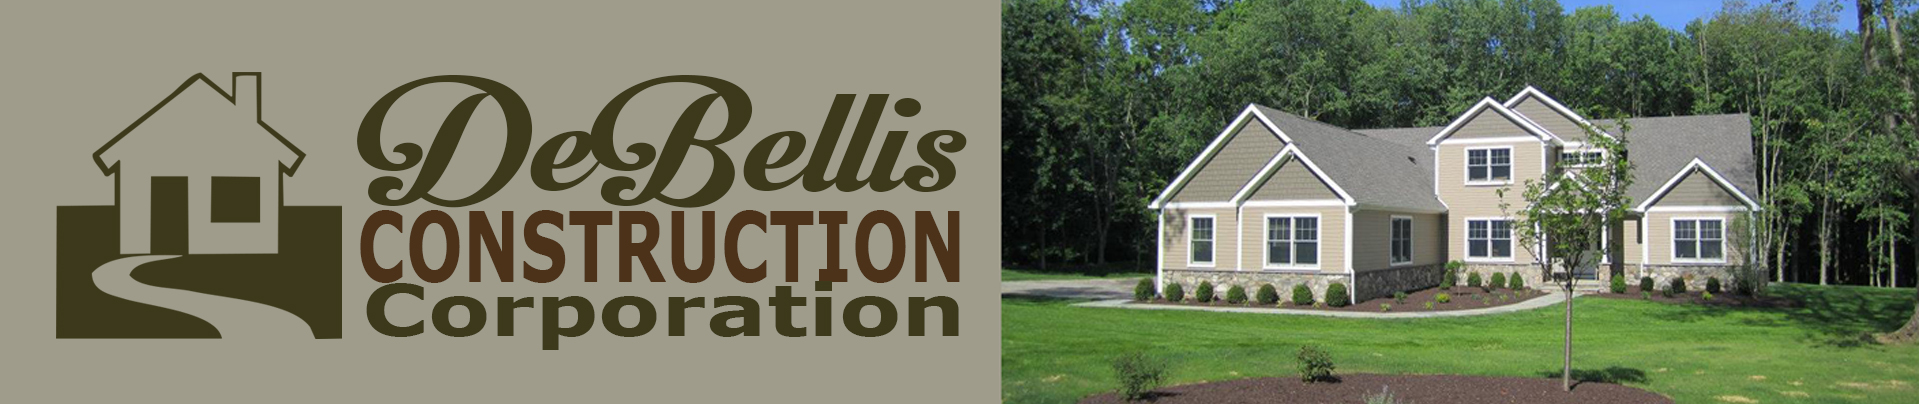 DeBellis Construction Corporation - Serving New York and Connecticut